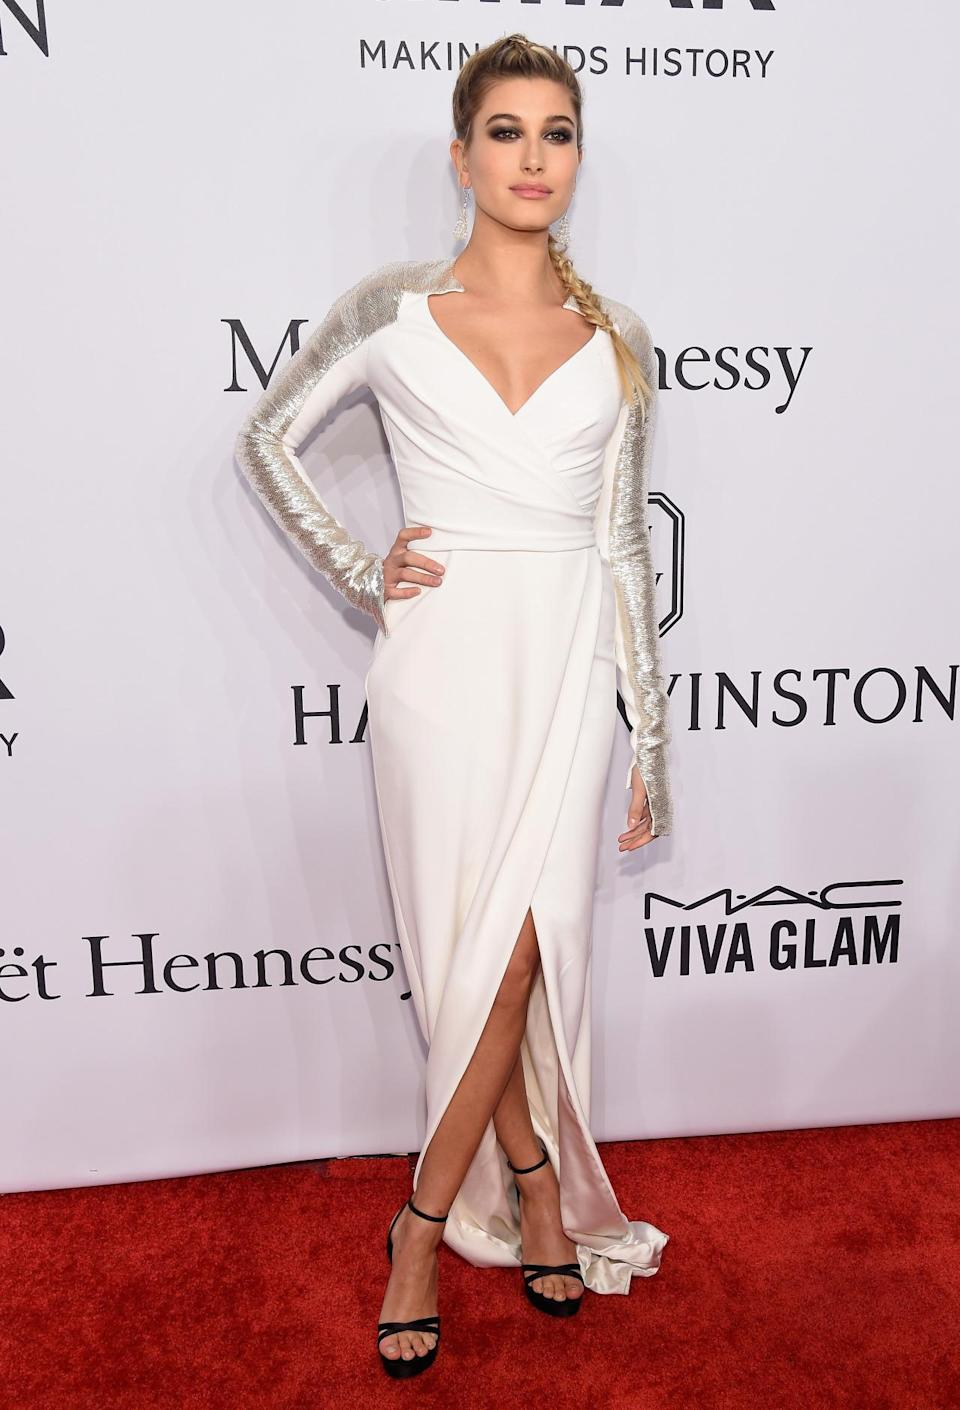 <p>Justin Bieber's rumoured girlfriend opted for a dramatic white and silver frock - and teamed it with an epic braid.<i> [Photo: Getty]</i><br></p>